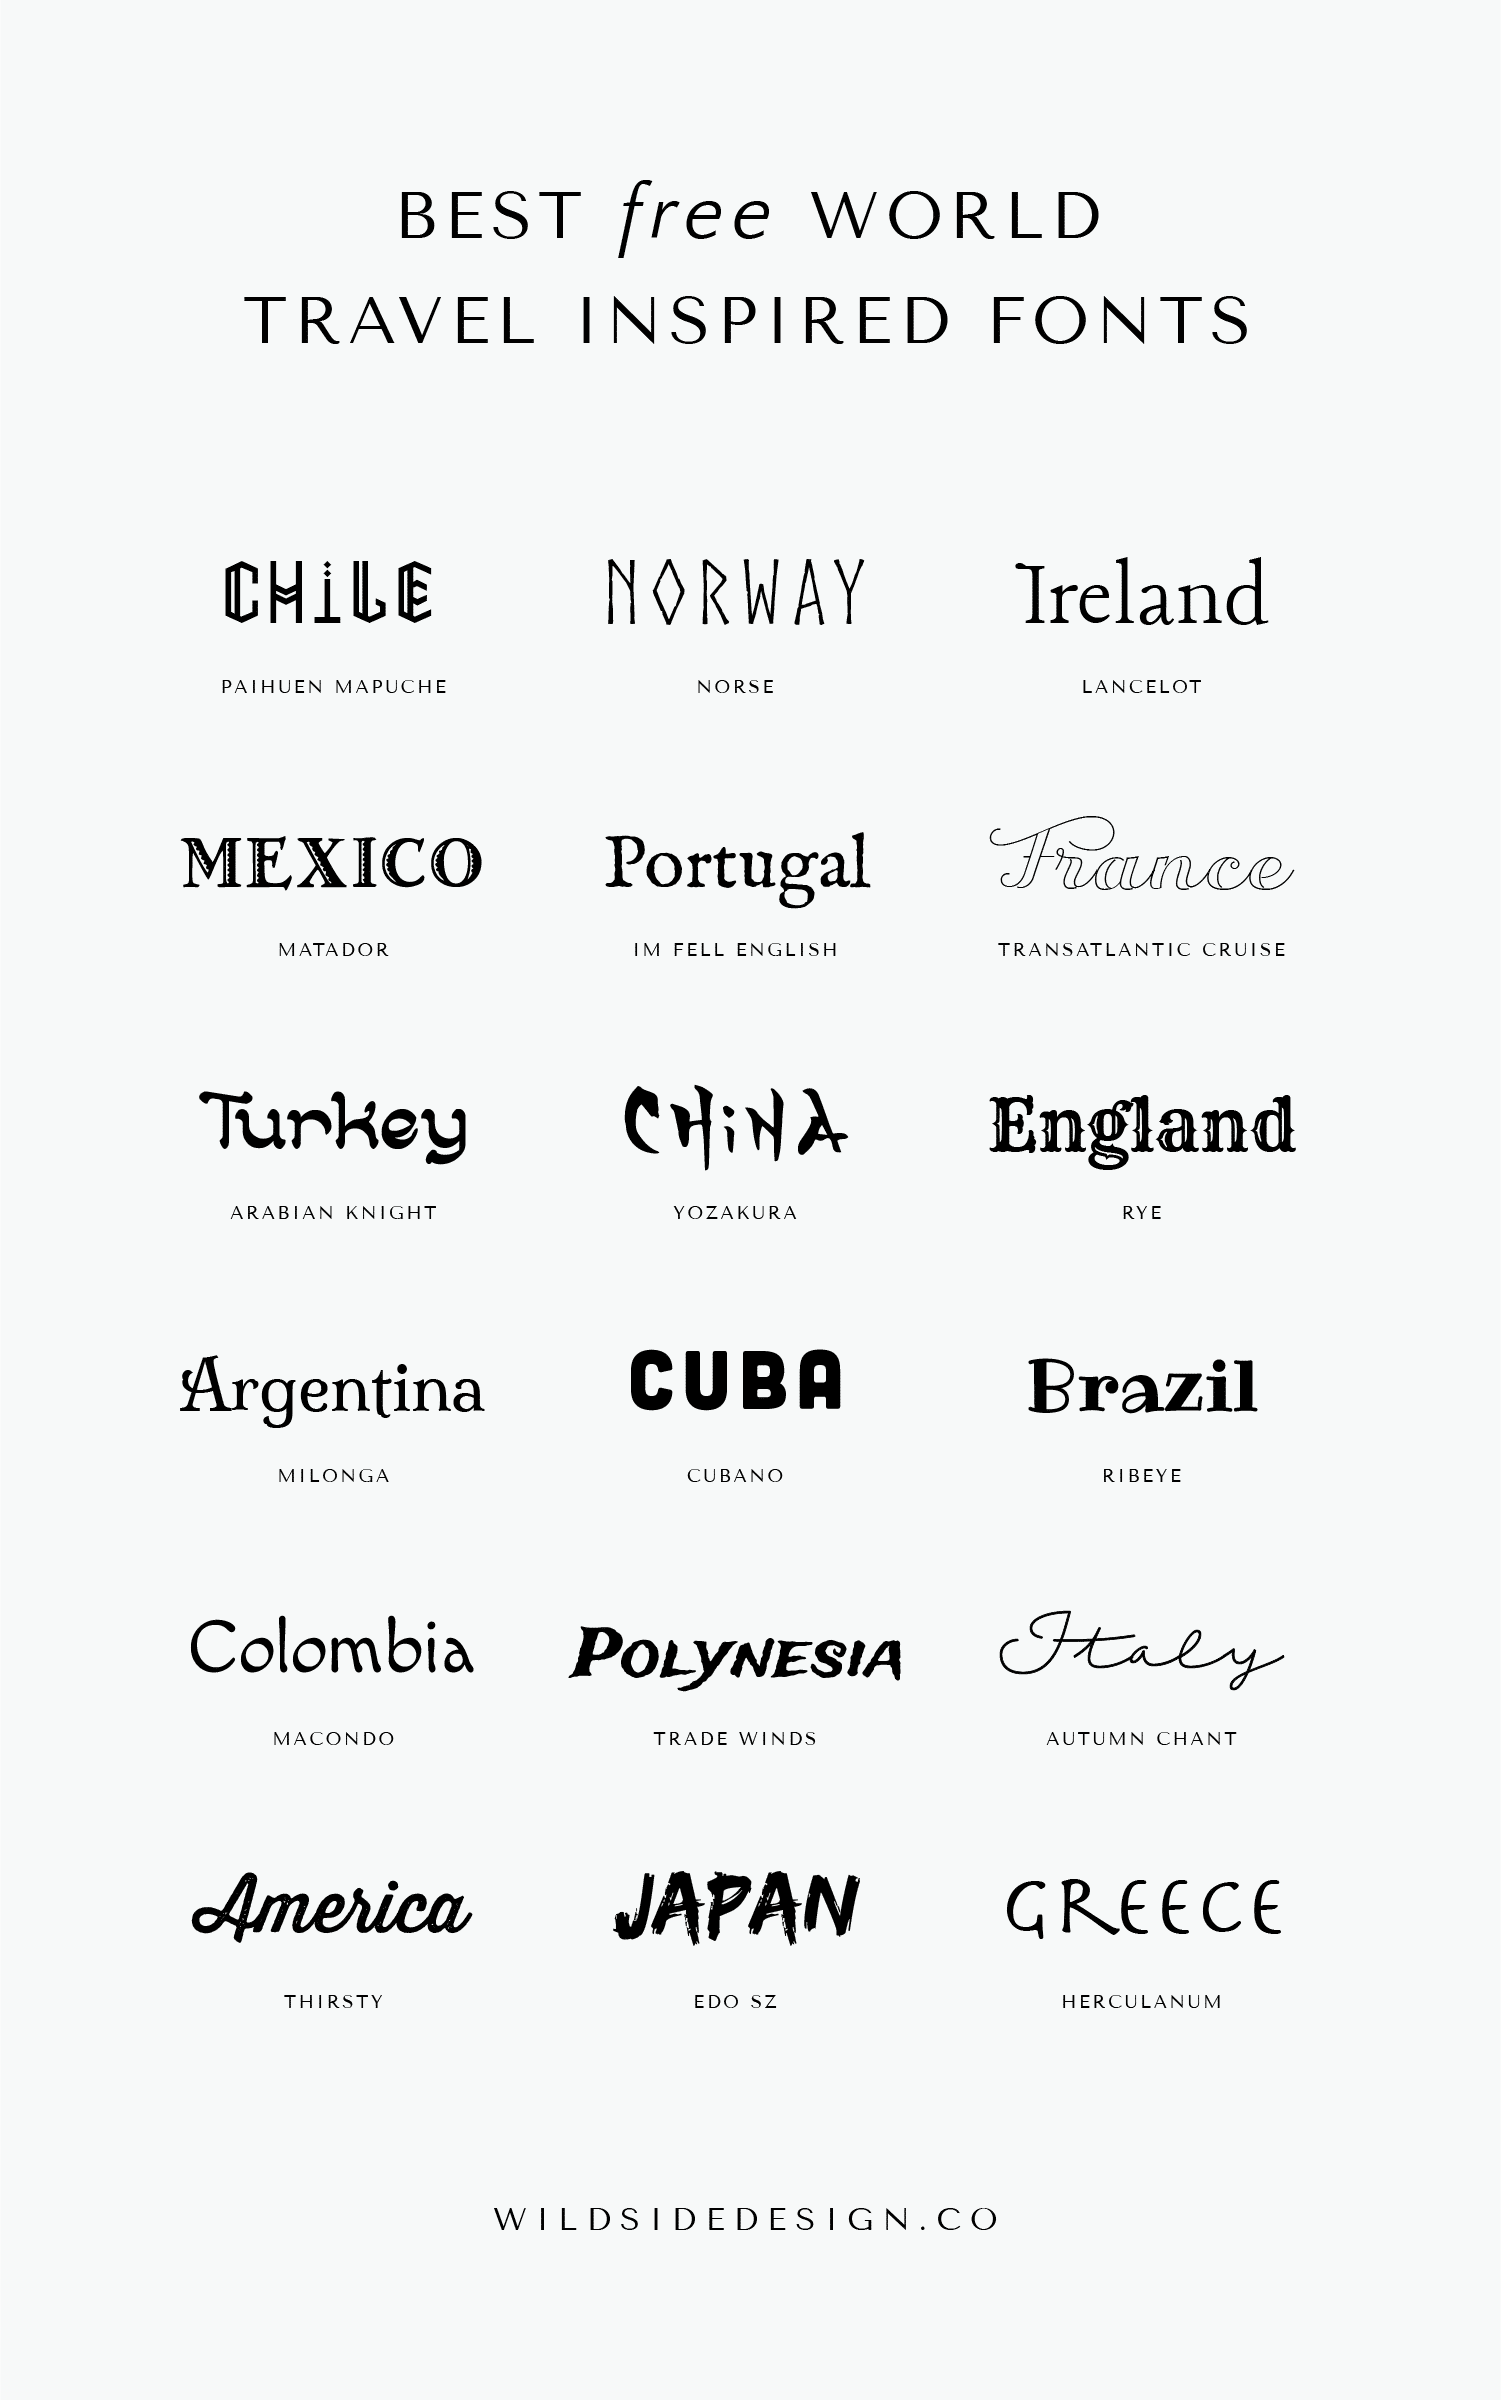 The Best Free World Travel Inspired Fonts Wild Side Design Co Travel Fonts Aesthetic Fonts Text Logo Design